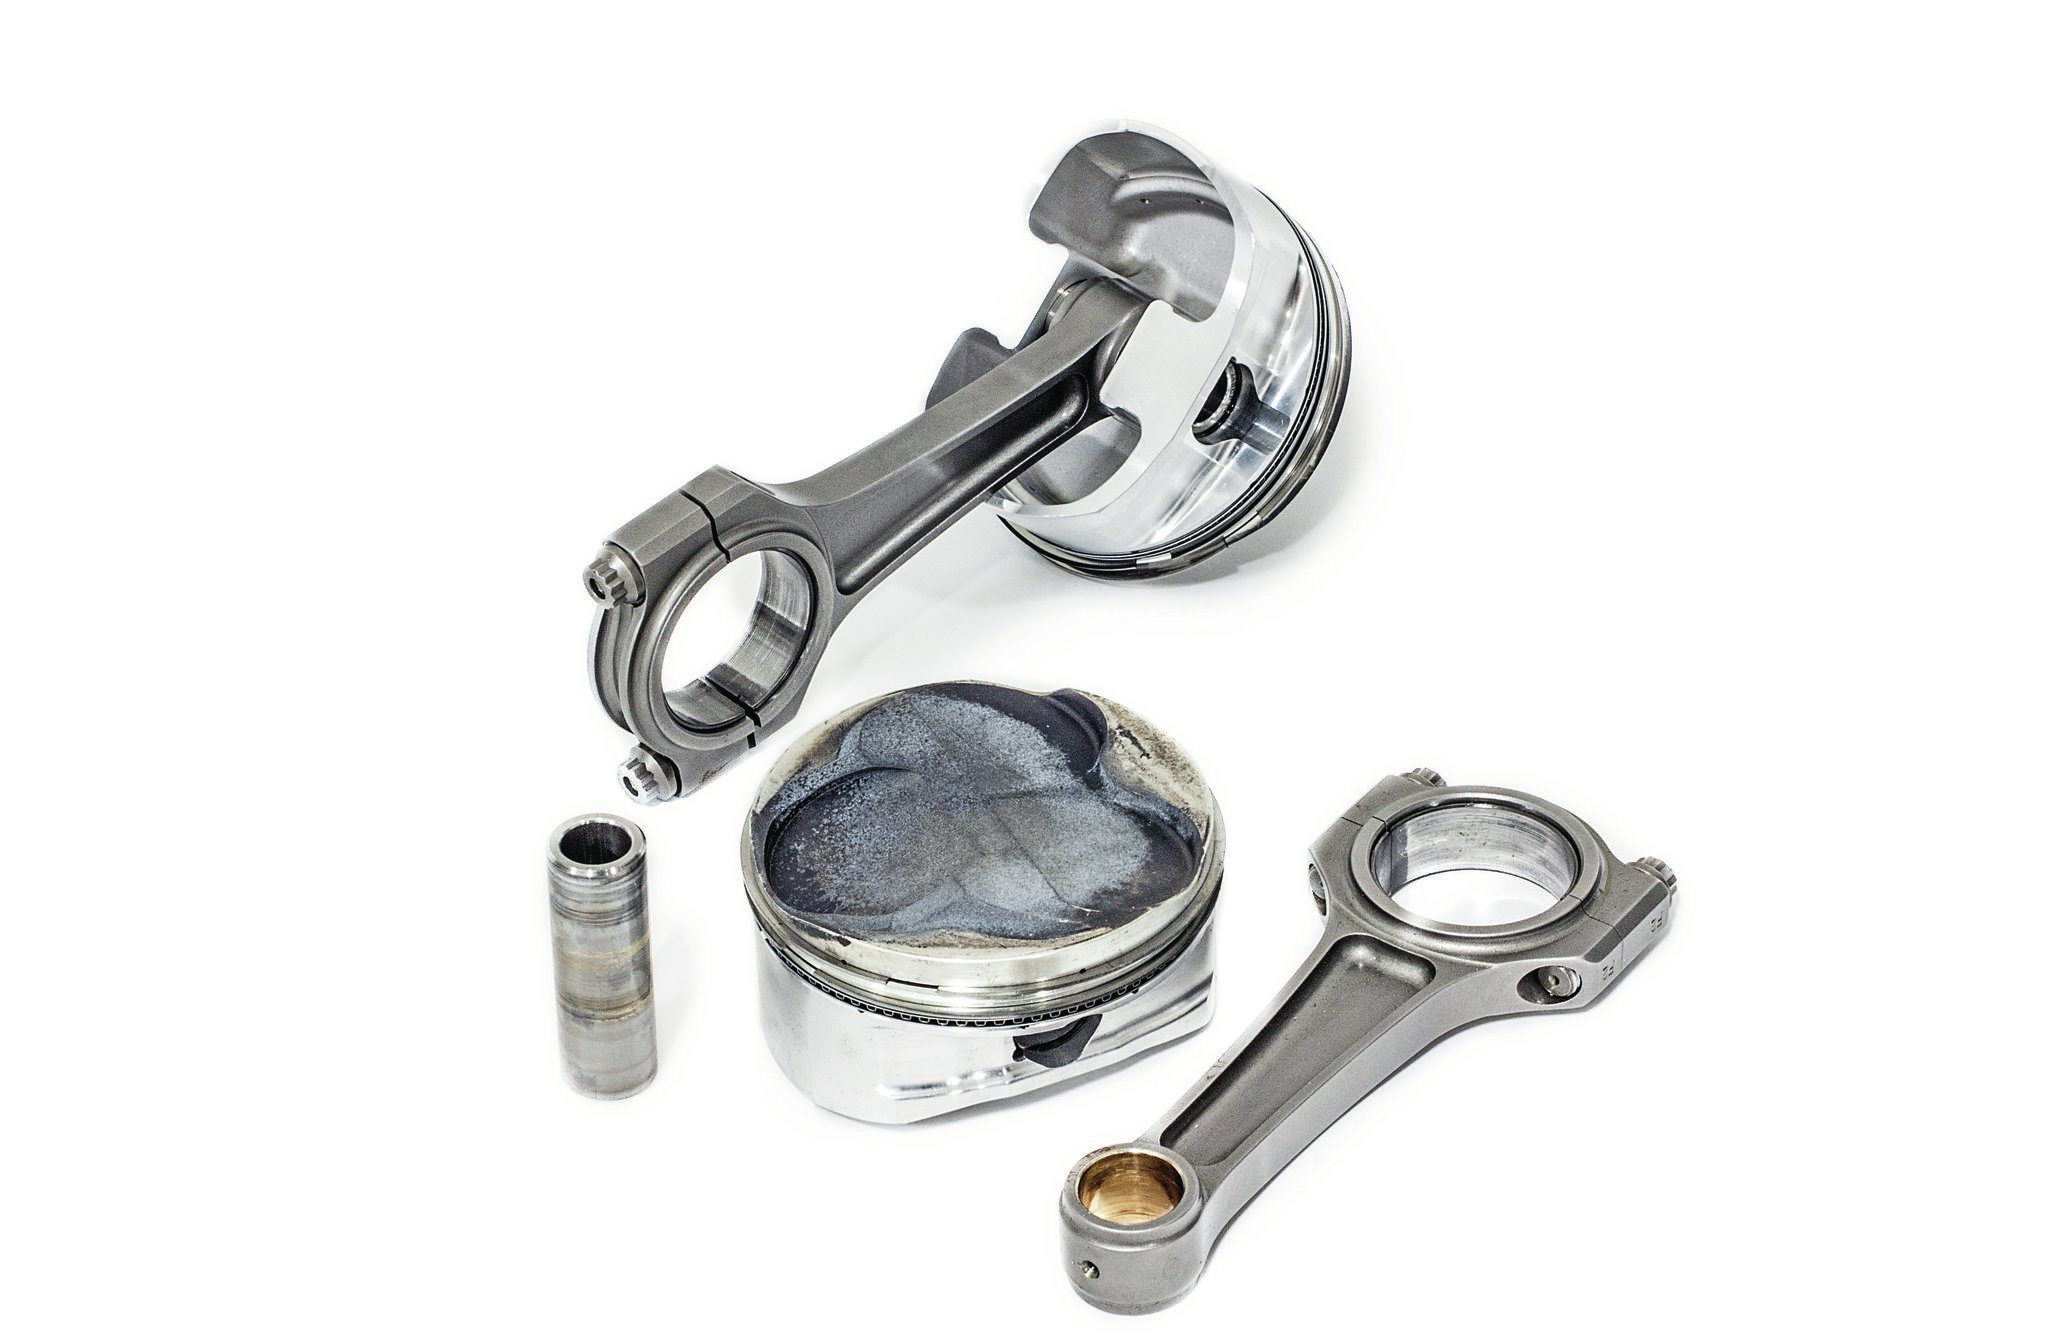 CP pistons retained on floating small-block Chevy-style 0.927 tool-steel pins by bulletproof round-wire retainers are swung by Crower billet-steel rods. Total Seal provided the lightweight 1mm–1mm–3mm ring pack. The rod/stroke ratio comes out to a desirable 1.9:1, which makes for good piston dwell time, low piston speeds, and—in theory—superior top-end performance.